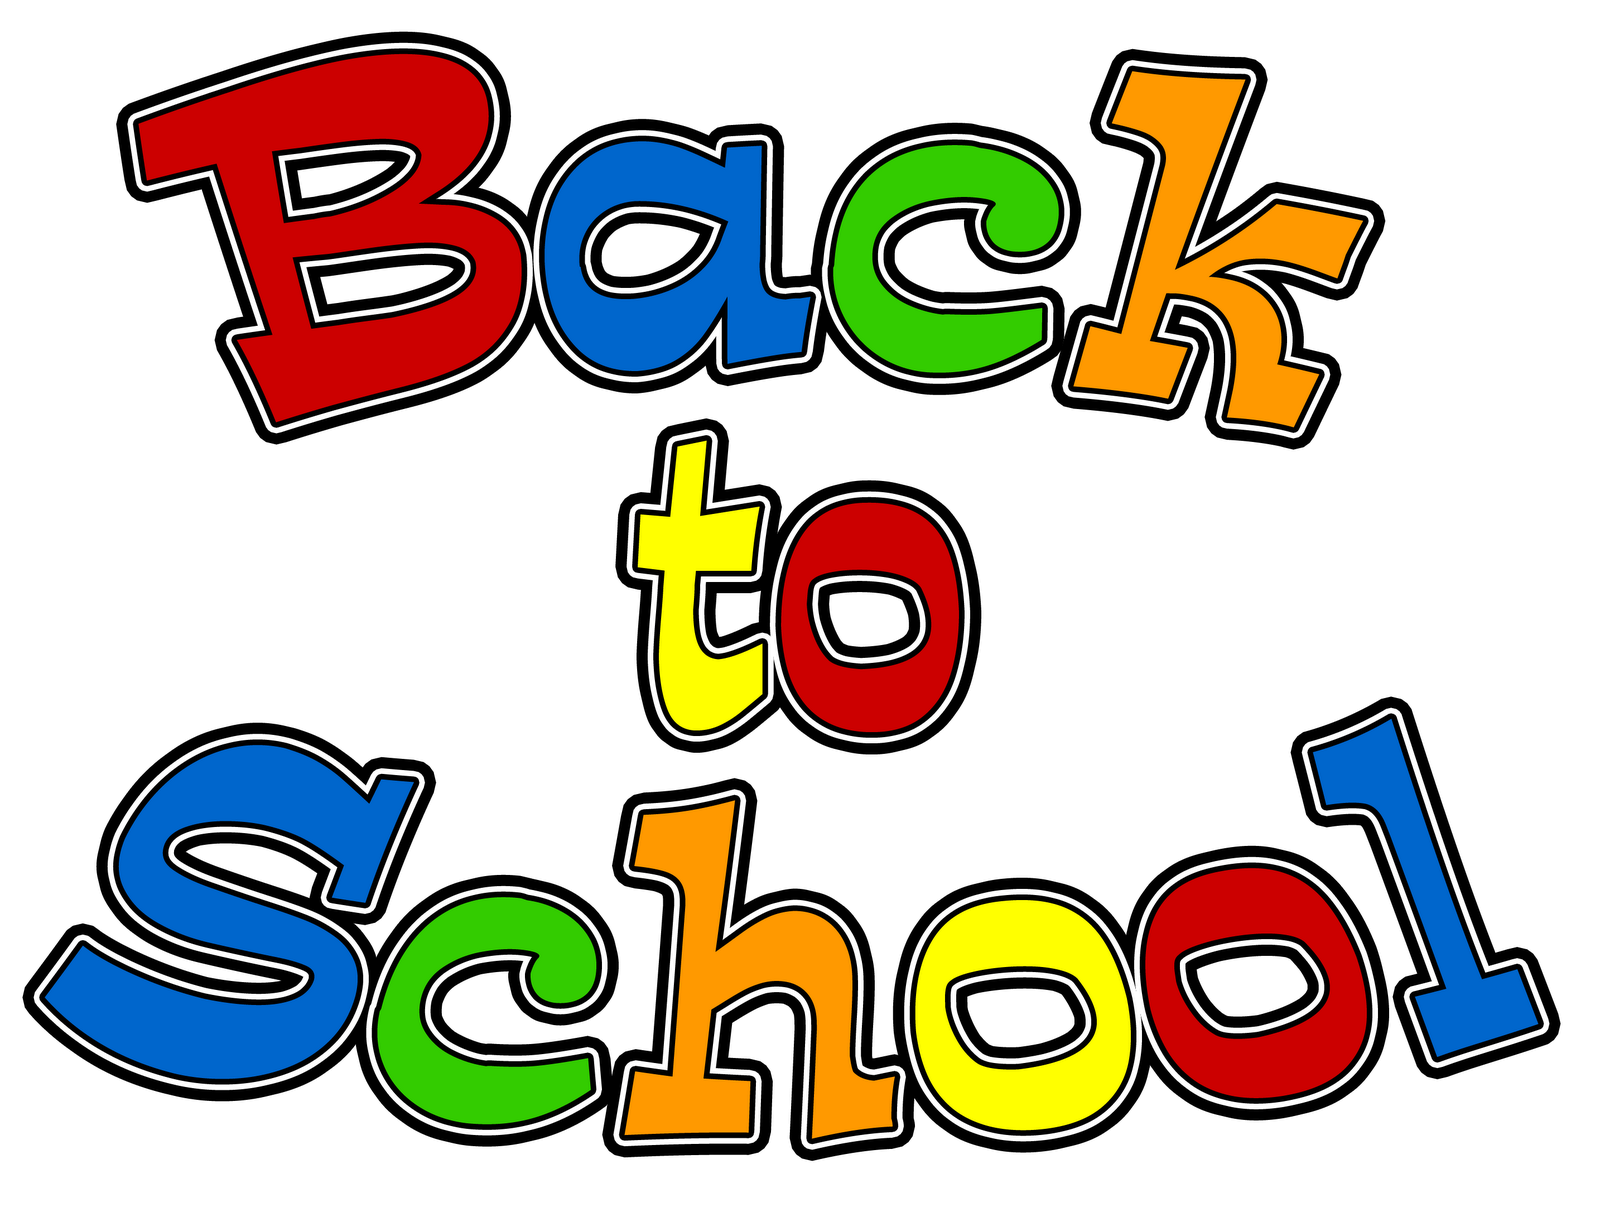 Back to school school clipart education -Back to school school clipart education clip art school clip art 3-15